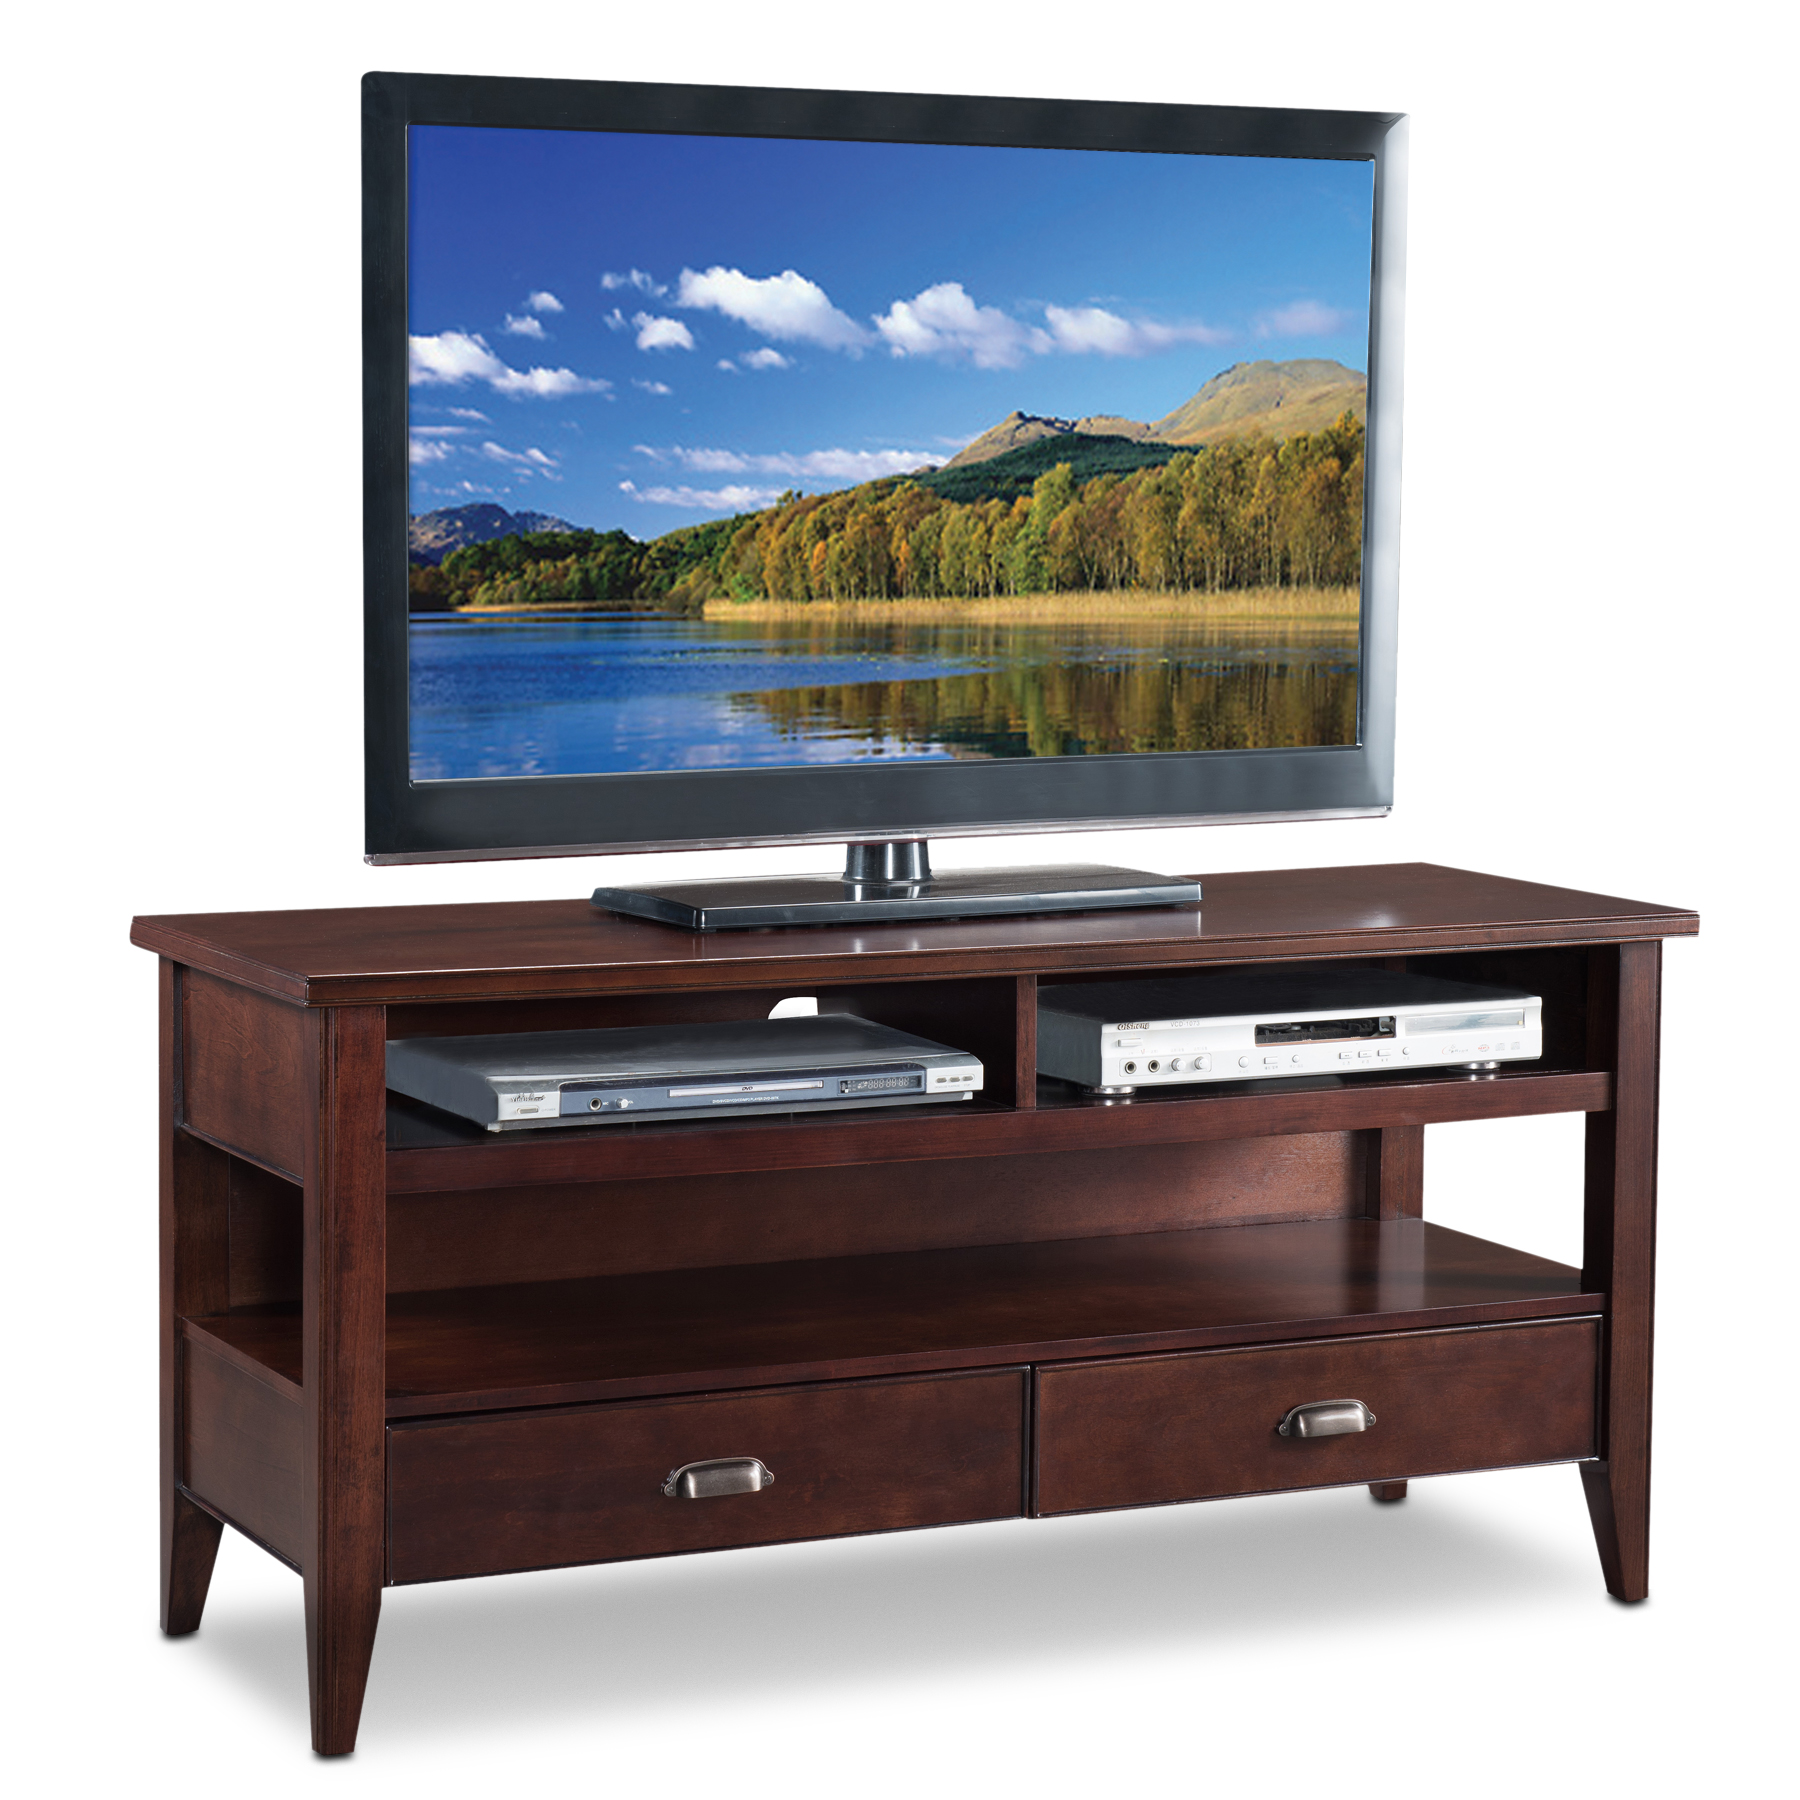 Leick 81560 Bella Maison 60-Inch TV Stand with Lever Handles Chocolate Cherry